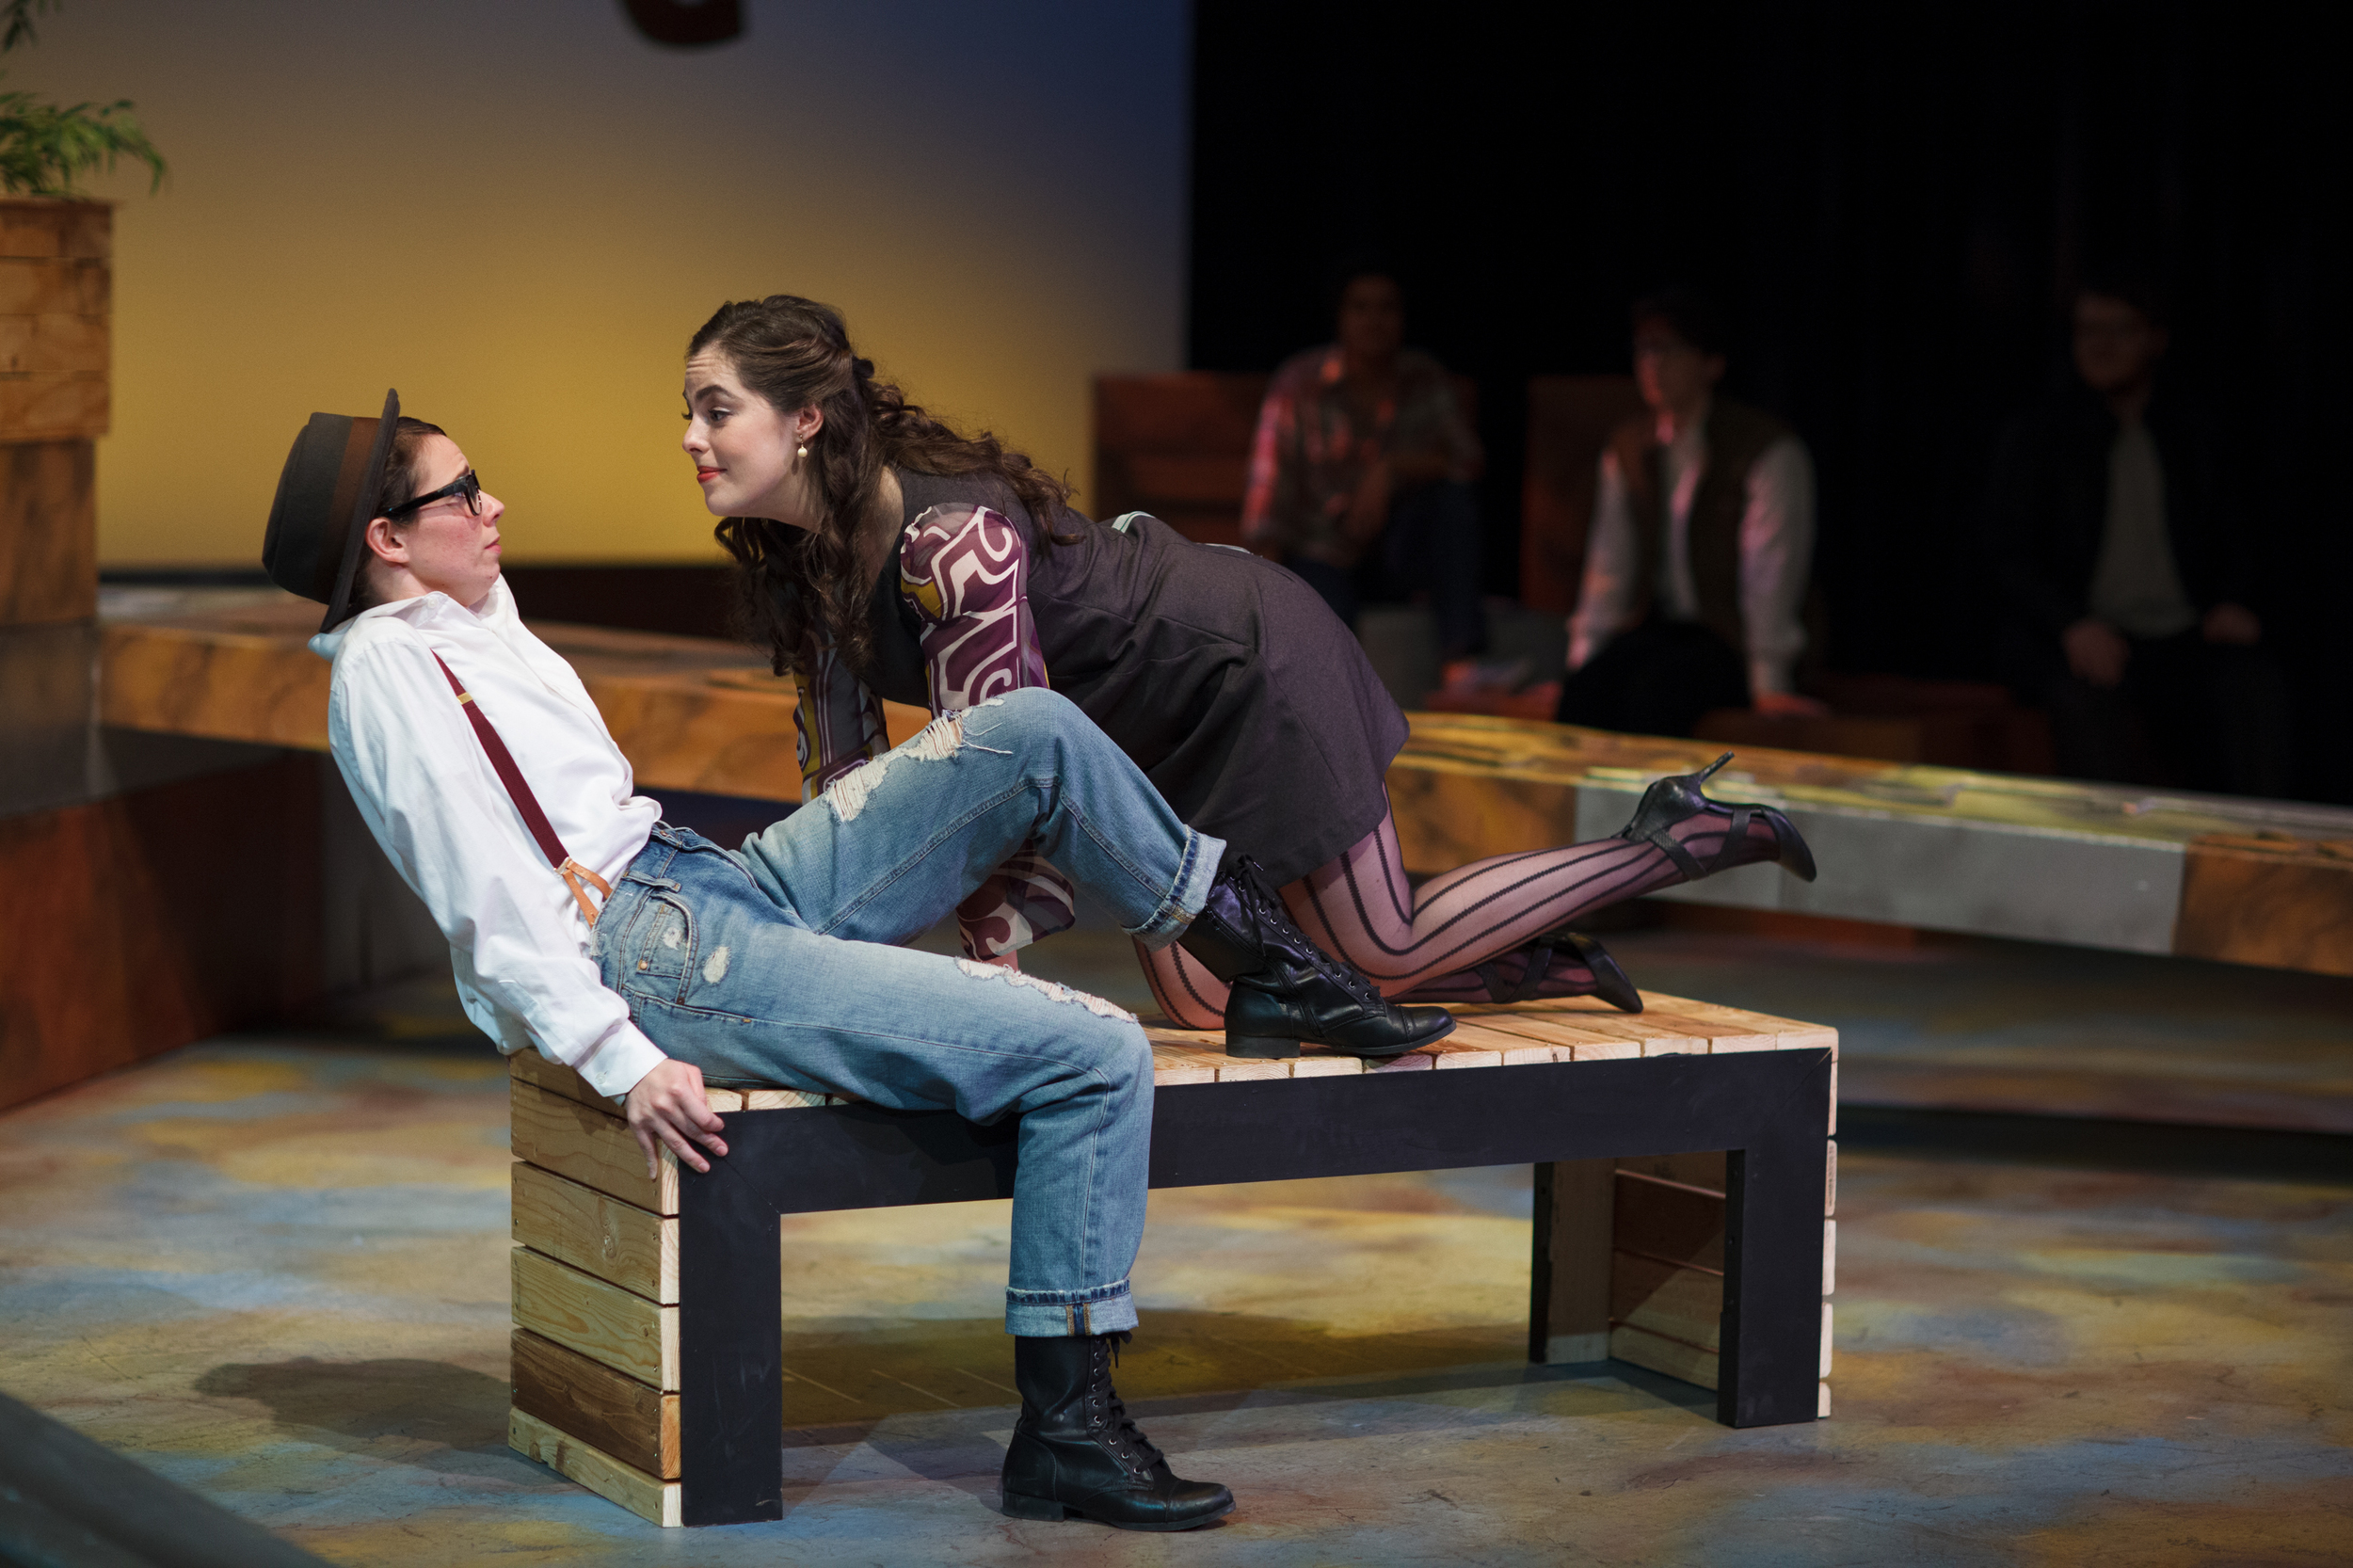 Scenic design by George Caldwell. Lighting design by Kacy Helwig. Costume design by Kimberly Hergert. Properties by Stephanie Stallman.